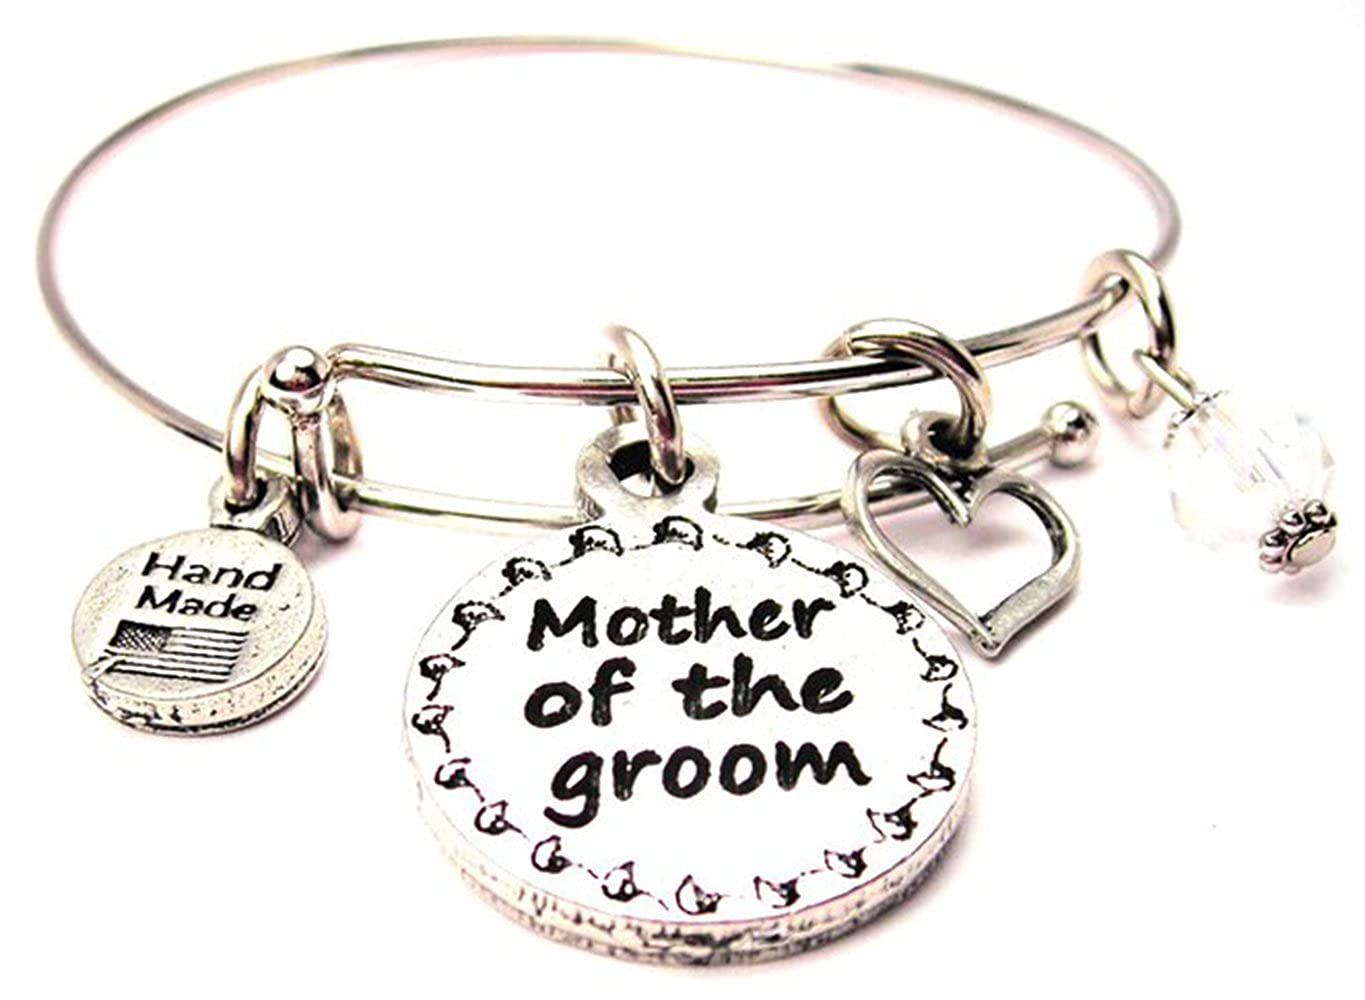 ChubbyChicoCharms God Bless You Adjustable Wire Bangle Bracelet